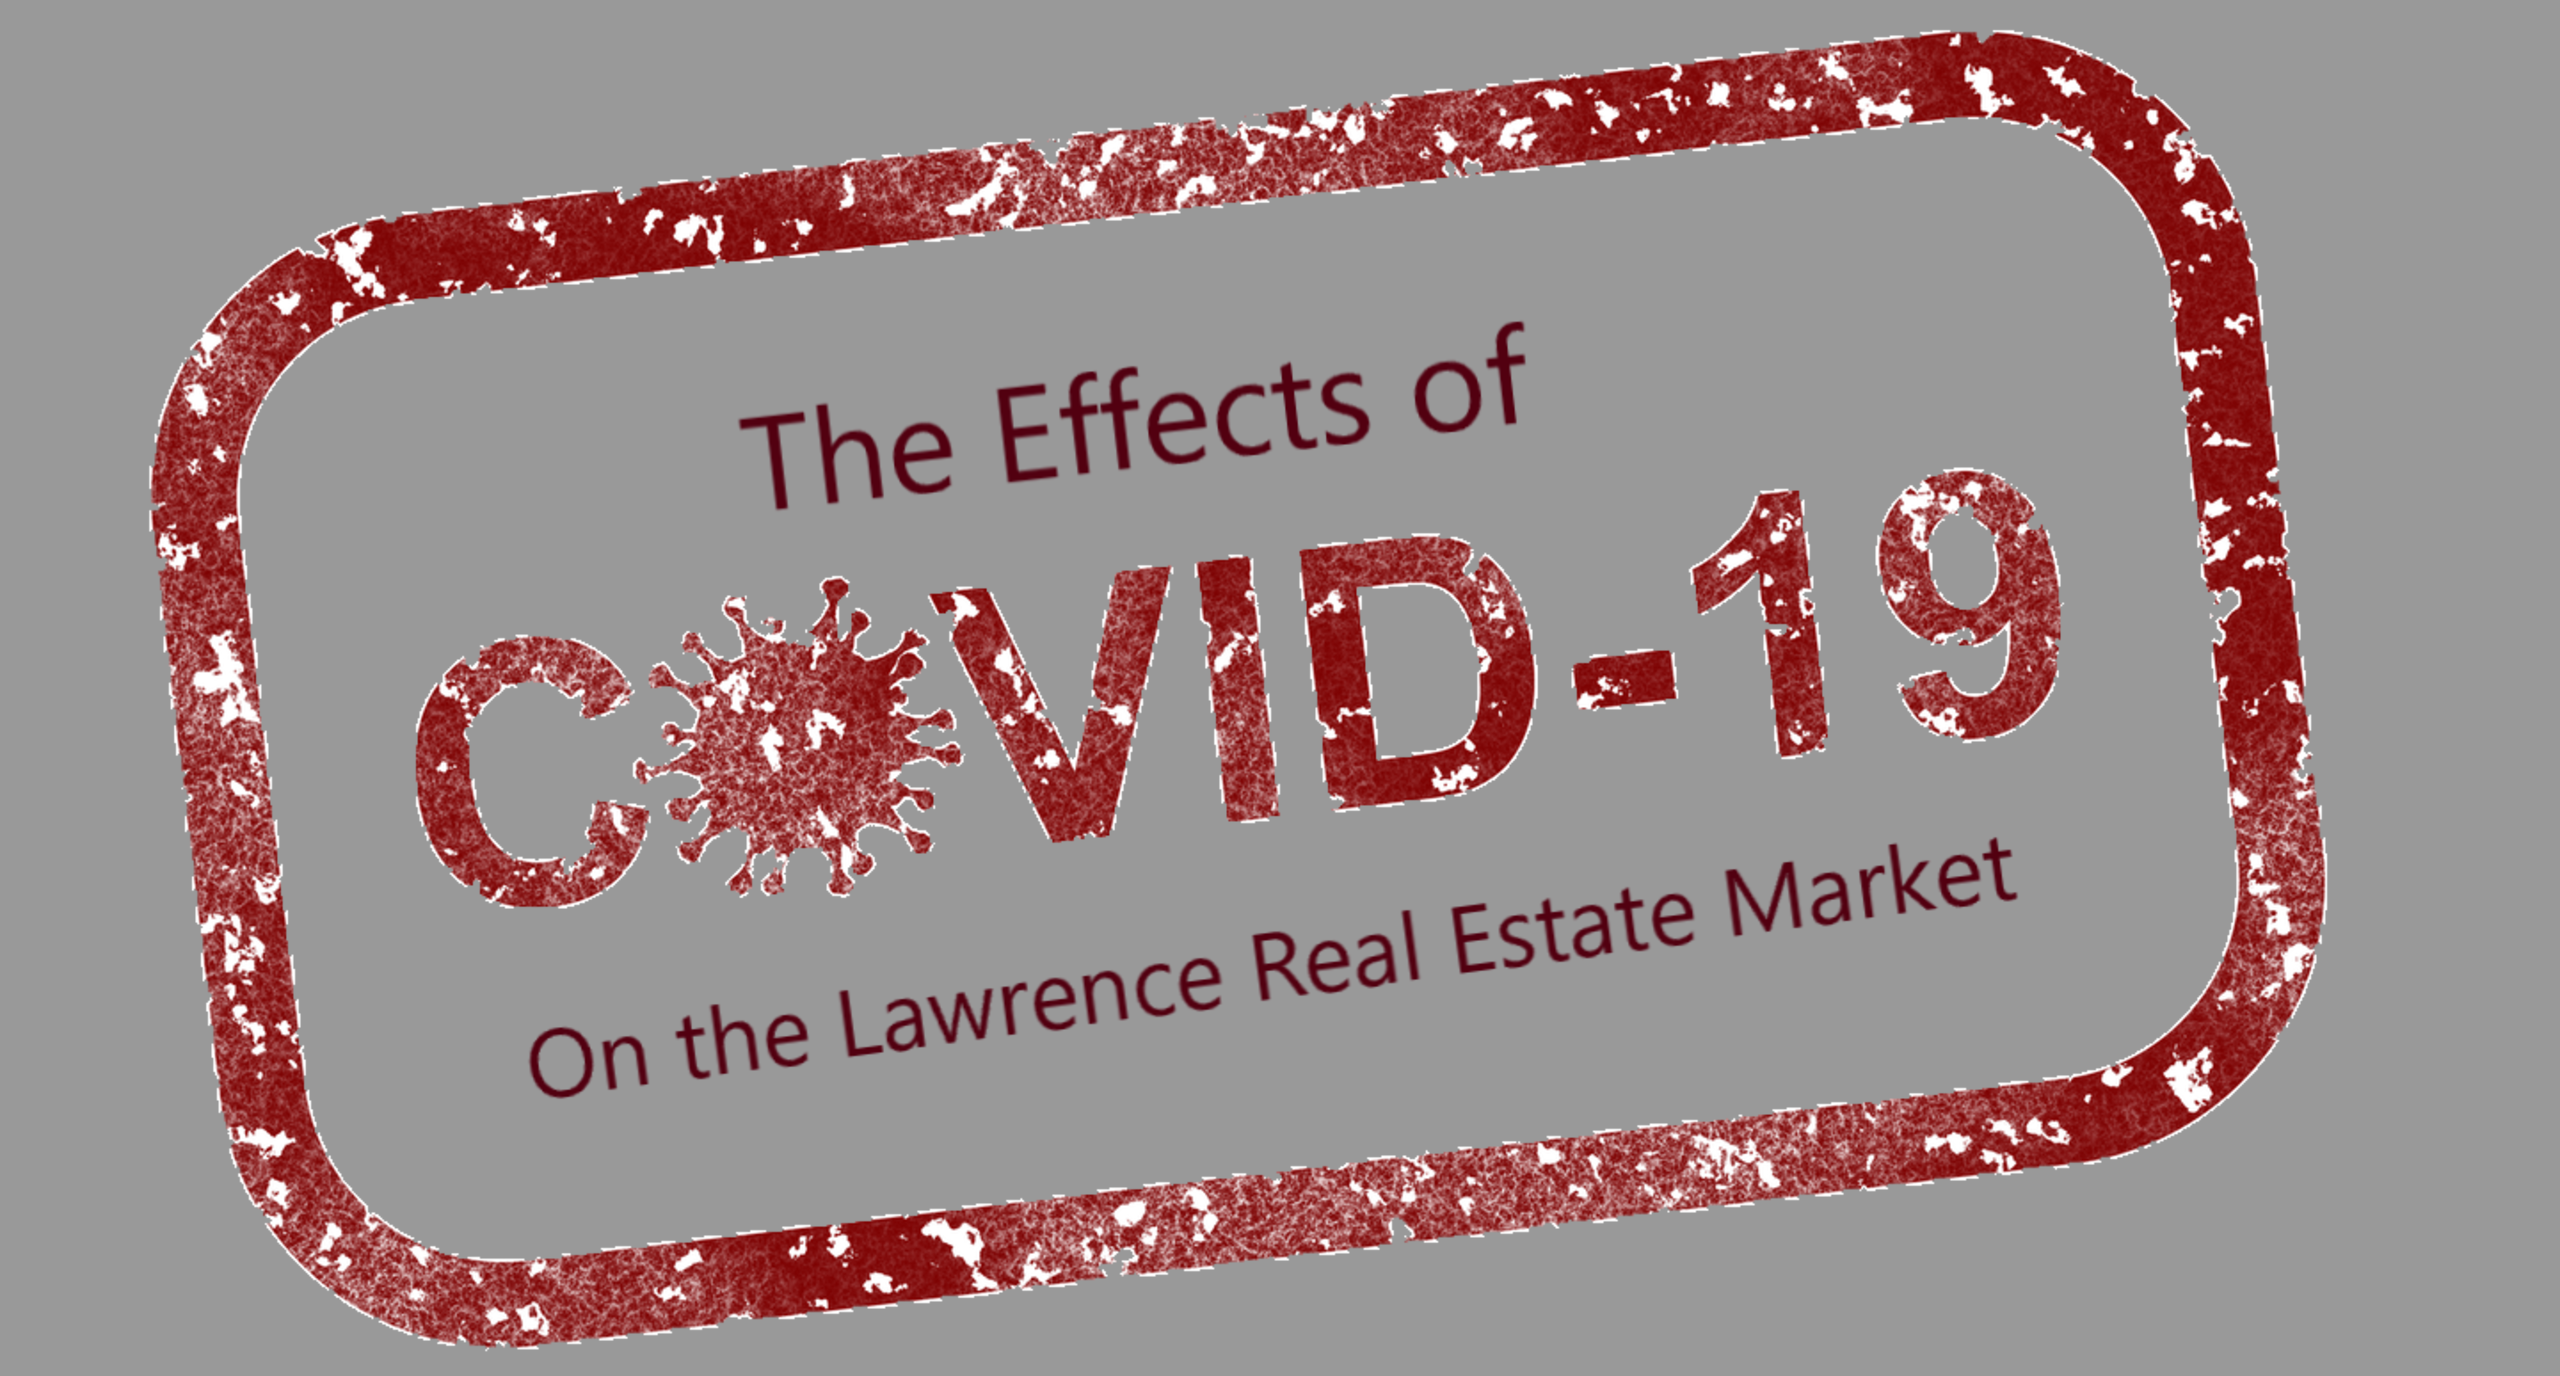 Effects of the COVID-19 Pandemic on Real Estate in Lawrence, KS